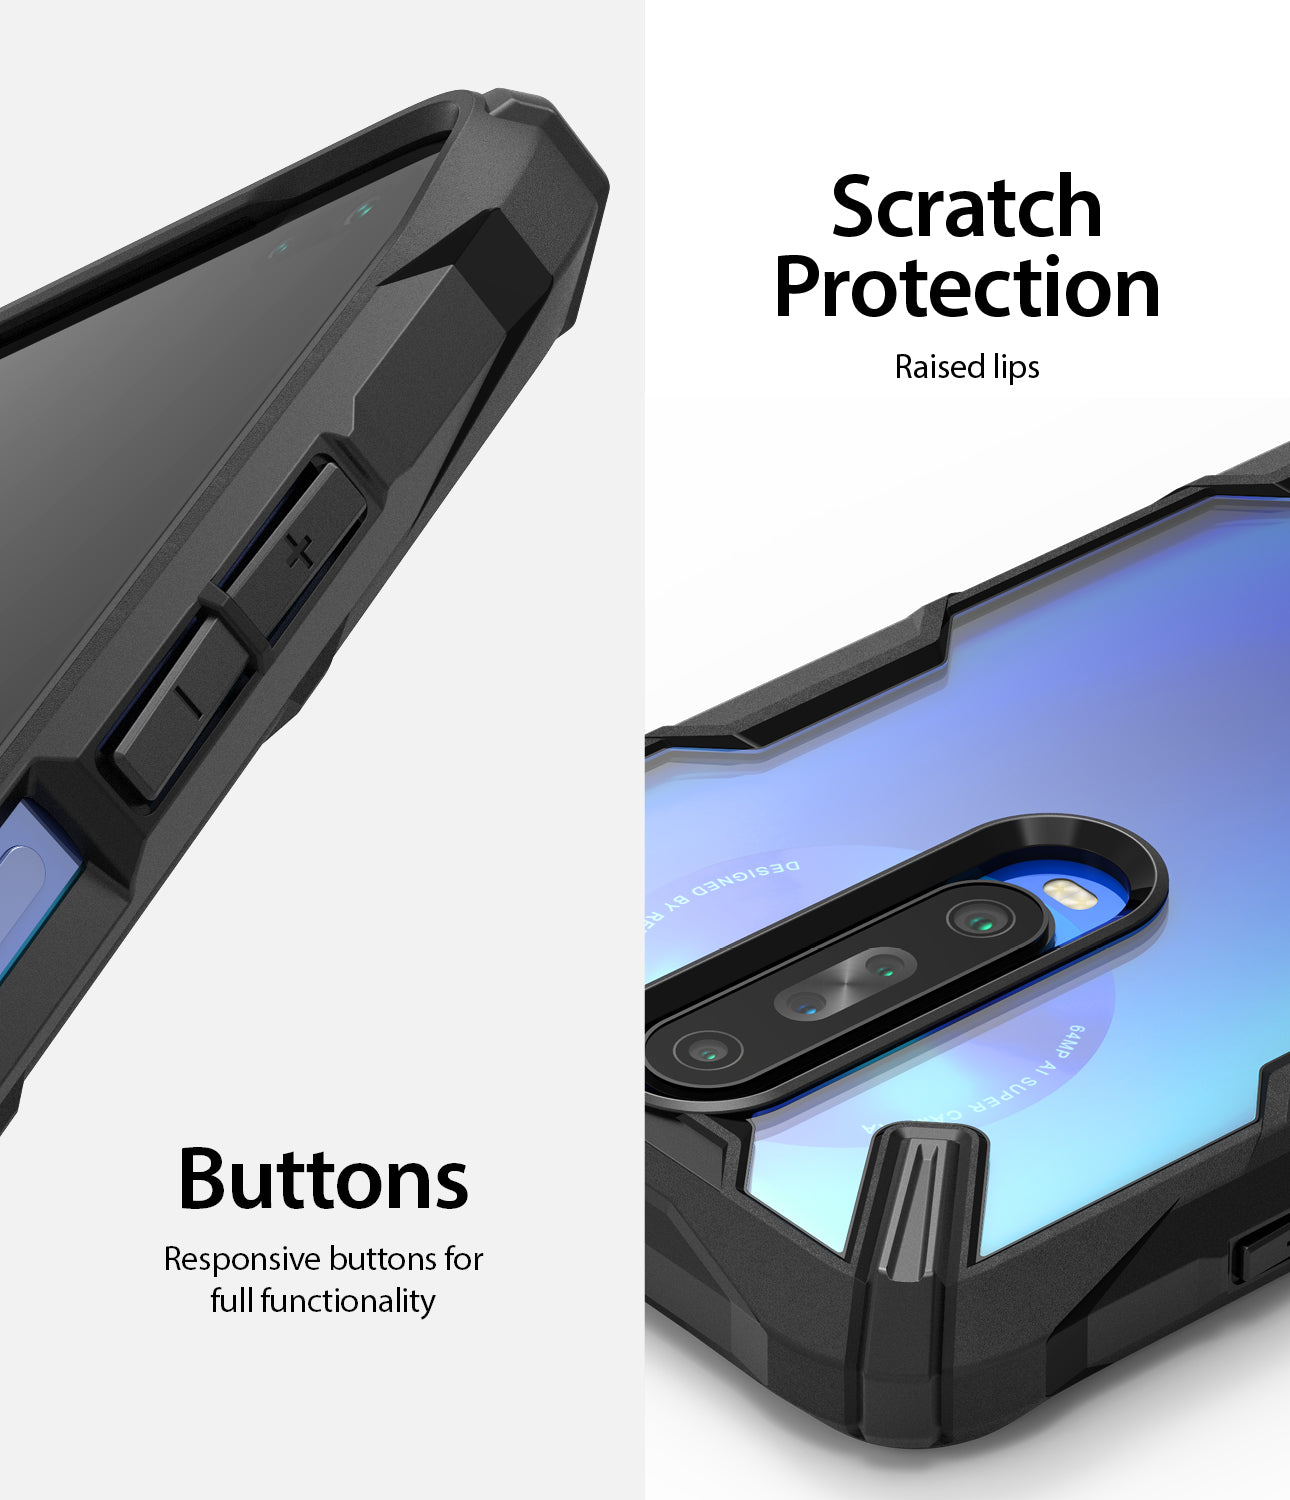 responsive buttons and scratch protection